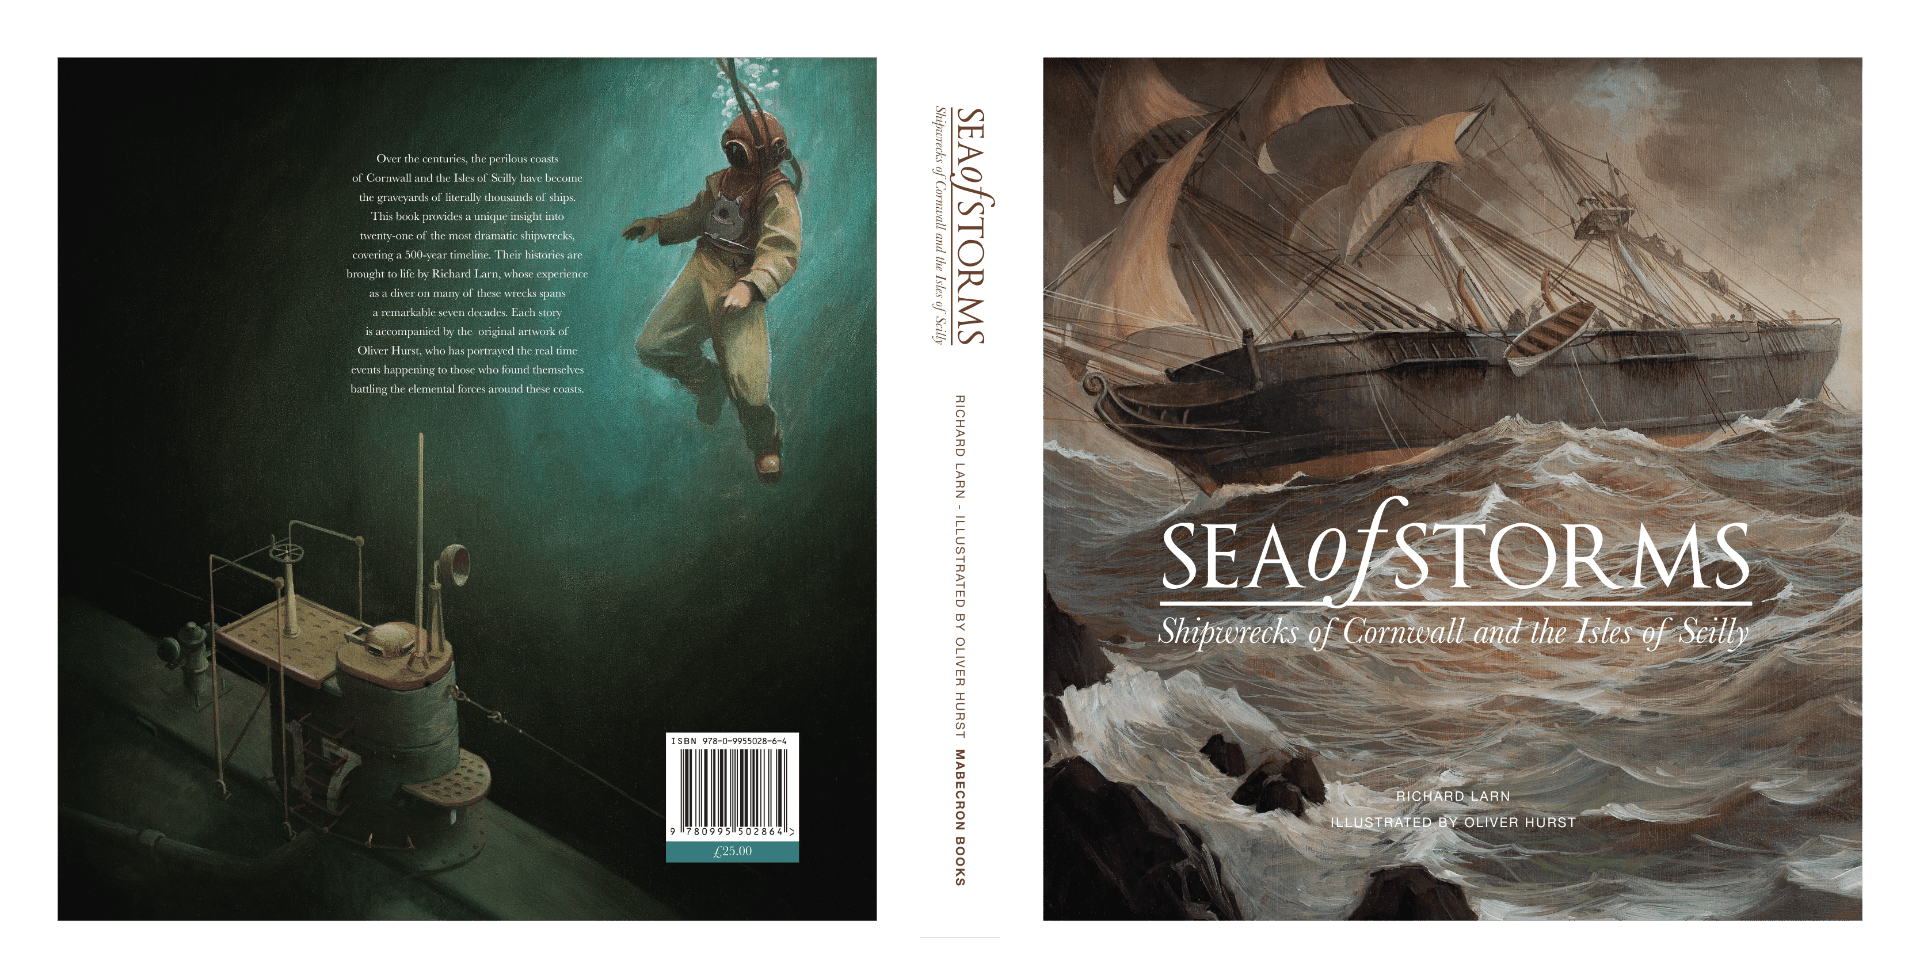 Sea of Storms, published by Mabecron Books